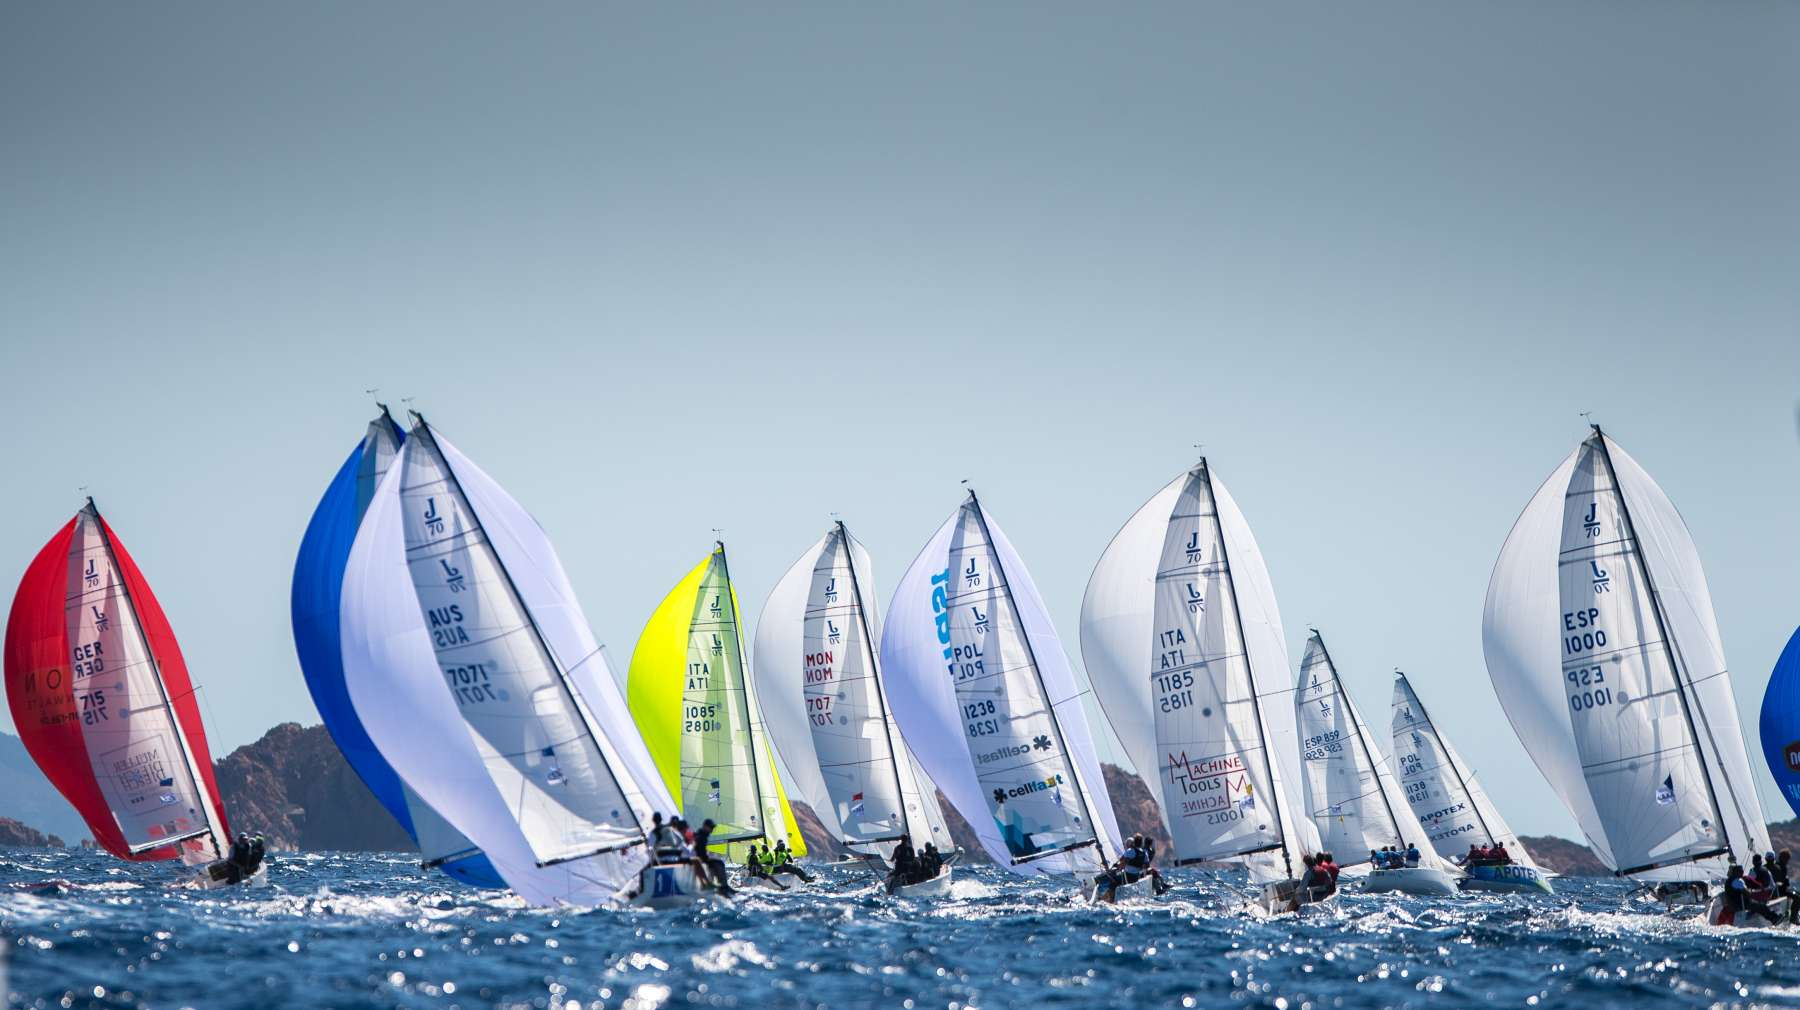 Audi J/70 World Championship - Images race Day 4 online - NEWS - Yacht Club Costa Smeralda